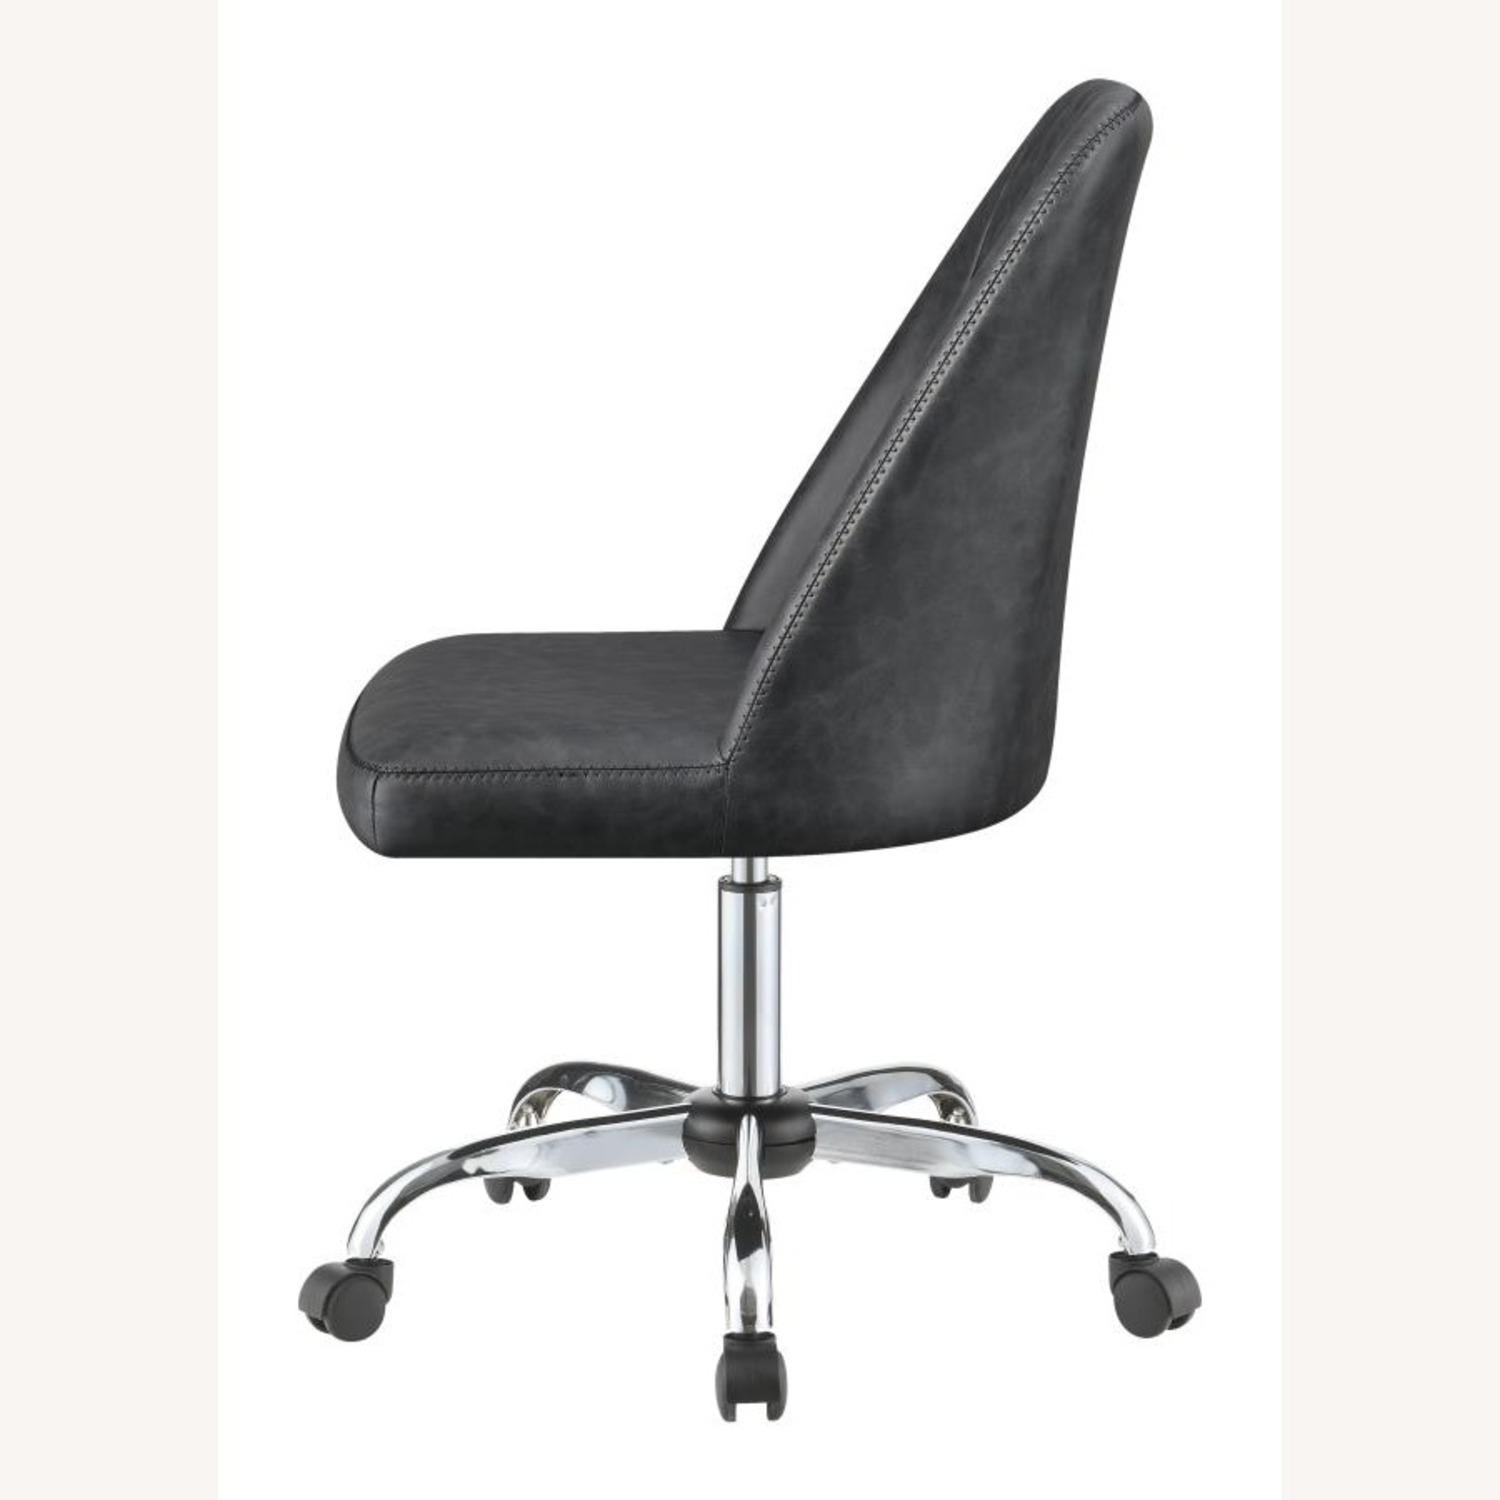 Office Chair In Tufted Grey Leatherette Upholstery - image-2